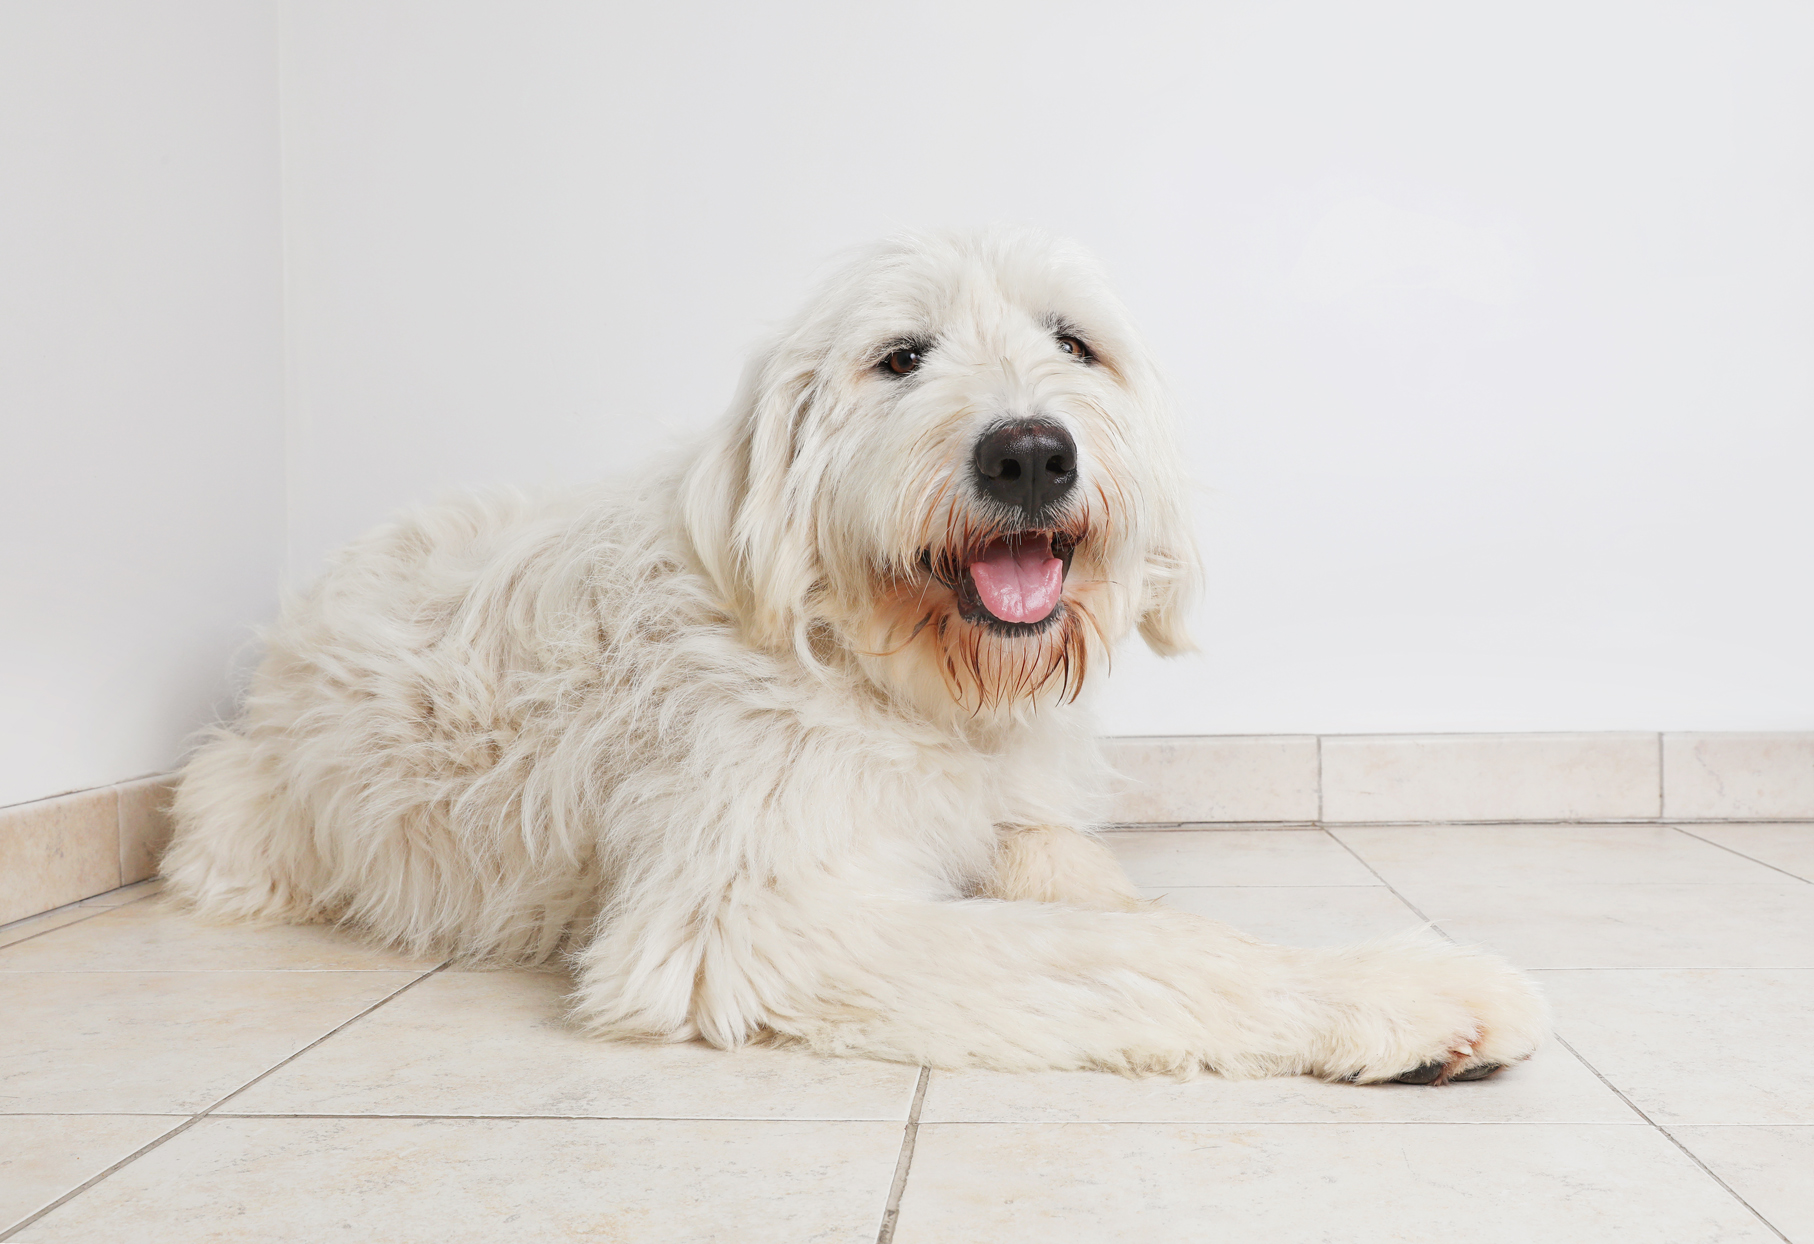 white pyredoodle laying on tile floor inside